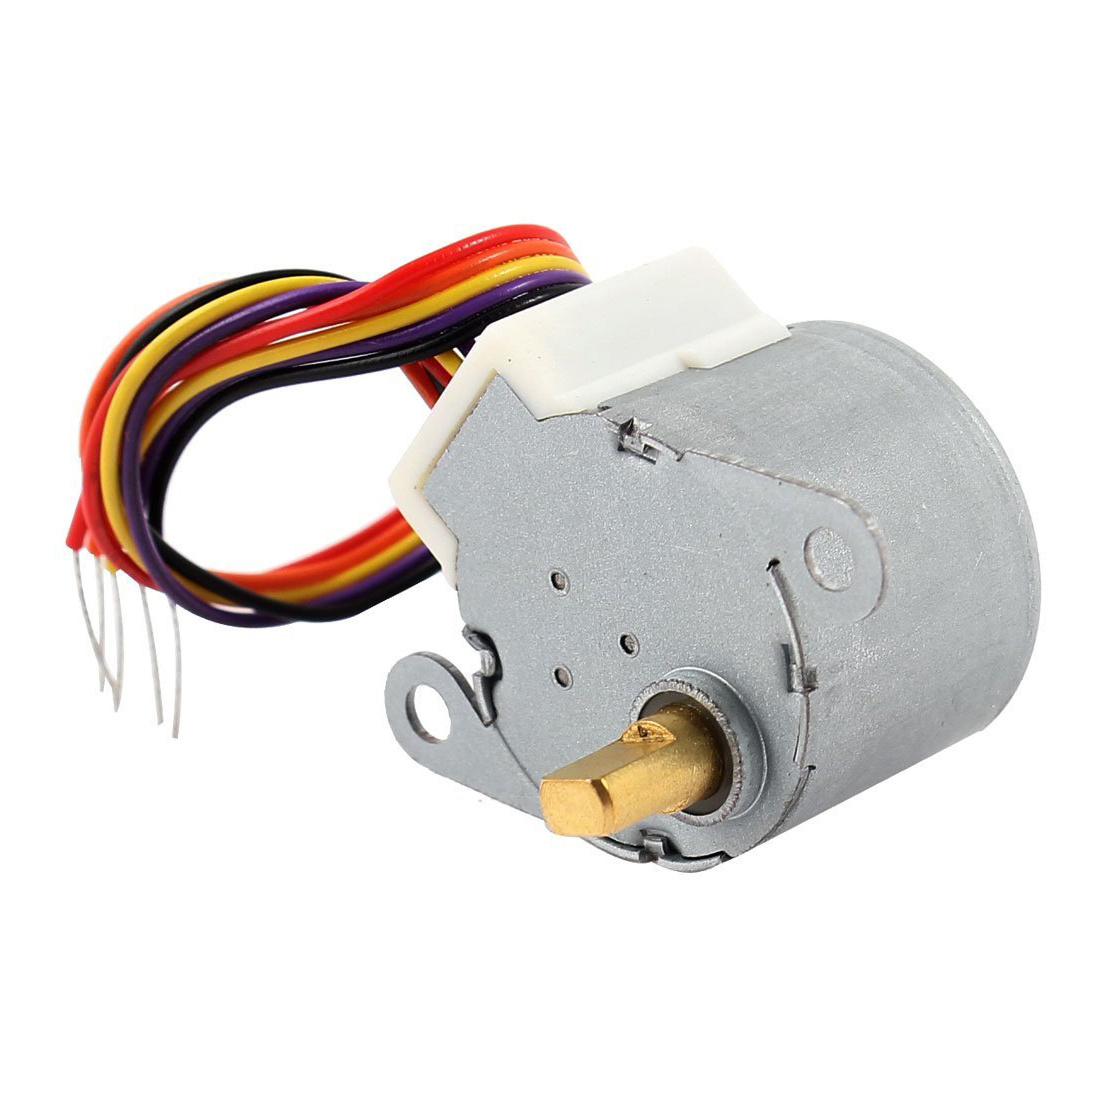 LIXF HOT <font><b>DC</b></font> <font><b>12V</b></font> CNC Reducing Stepping Stepper Motor 0.6A 10oz.in <font><b>24BYJ48</b></font> Silver image